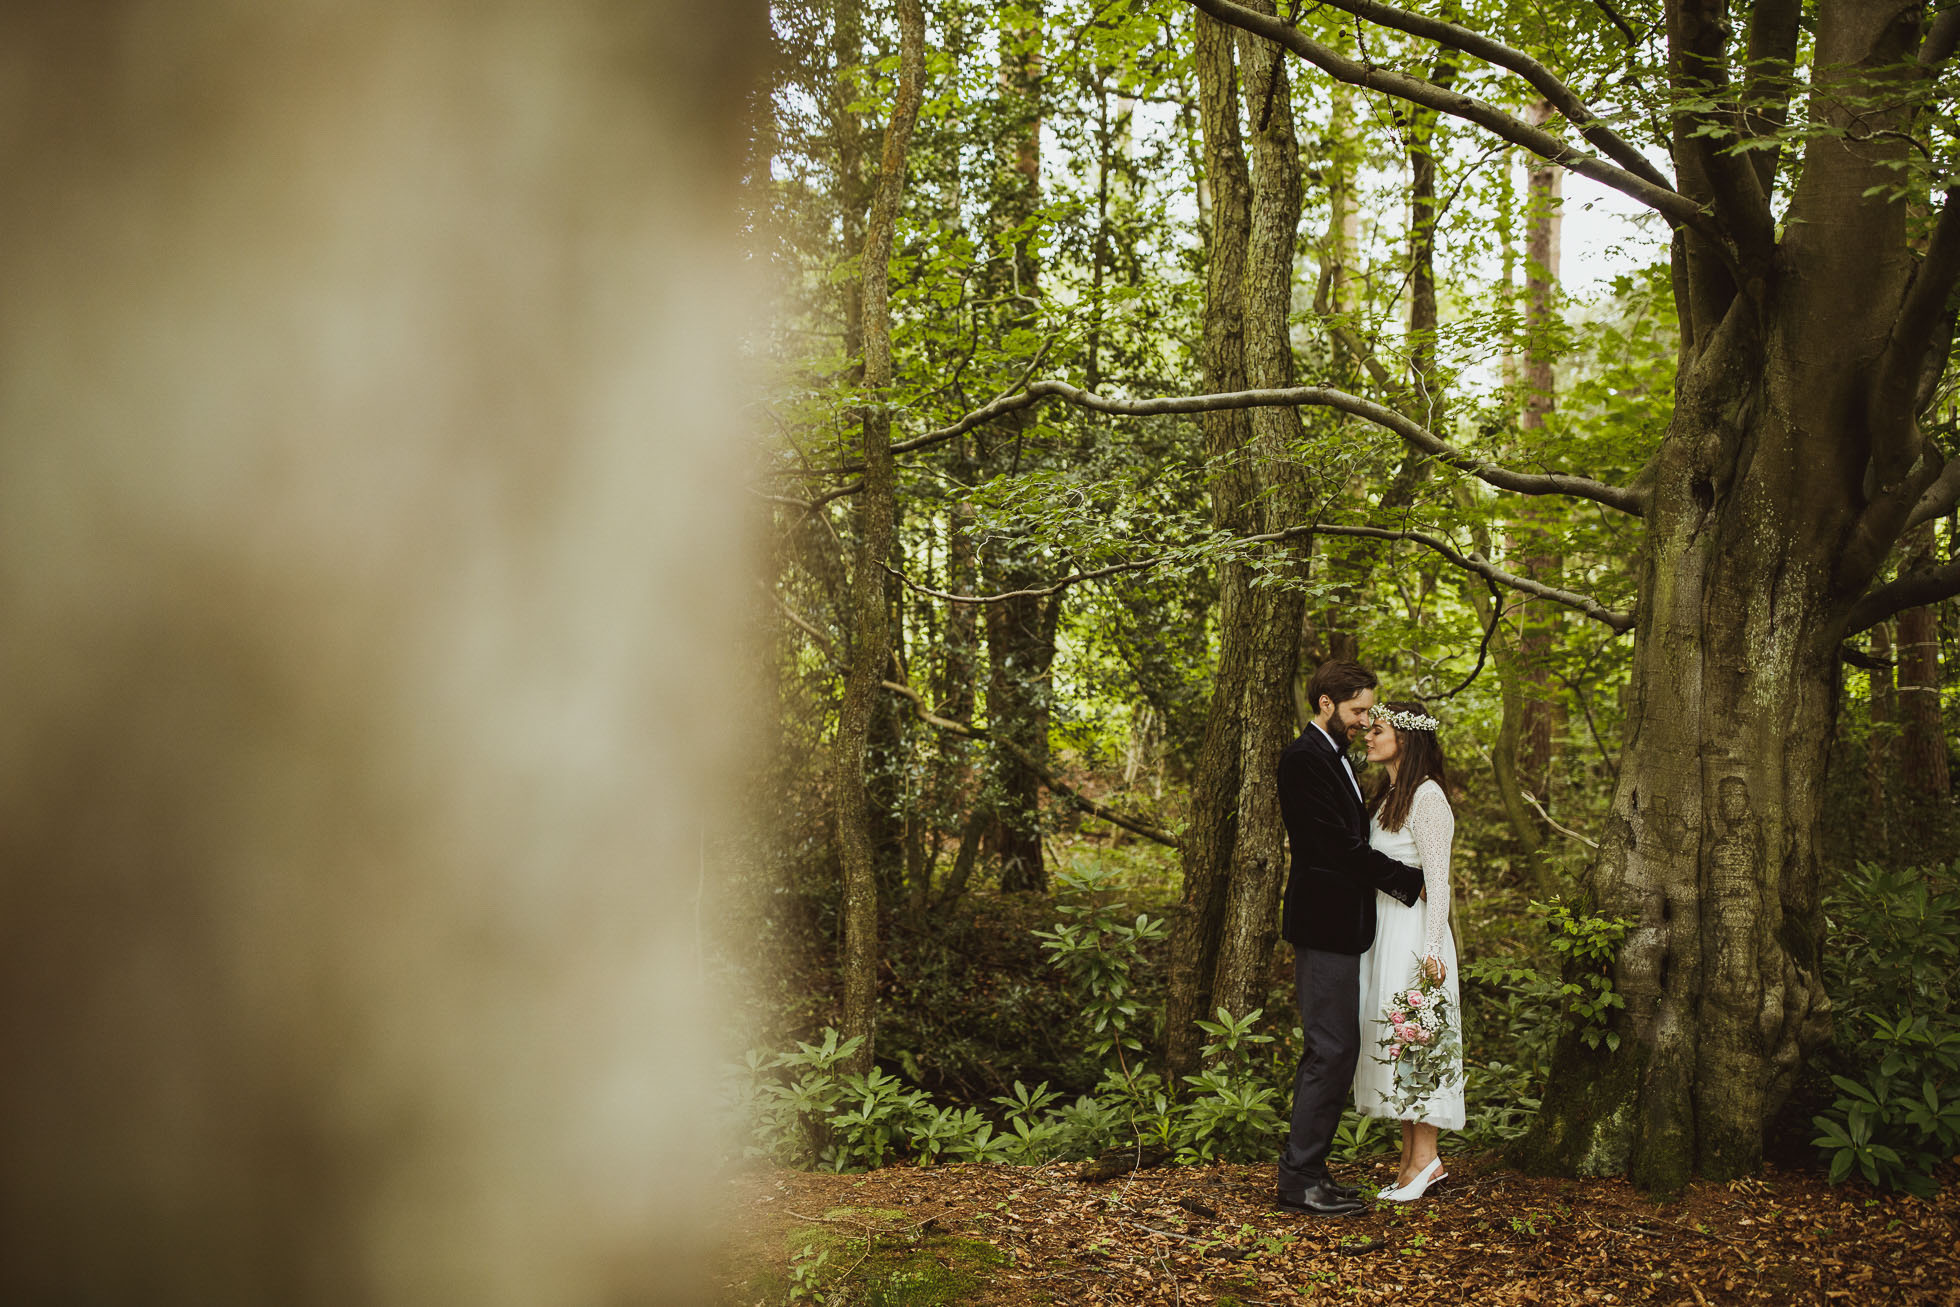 pickering_wedding_photographer-56.jpg